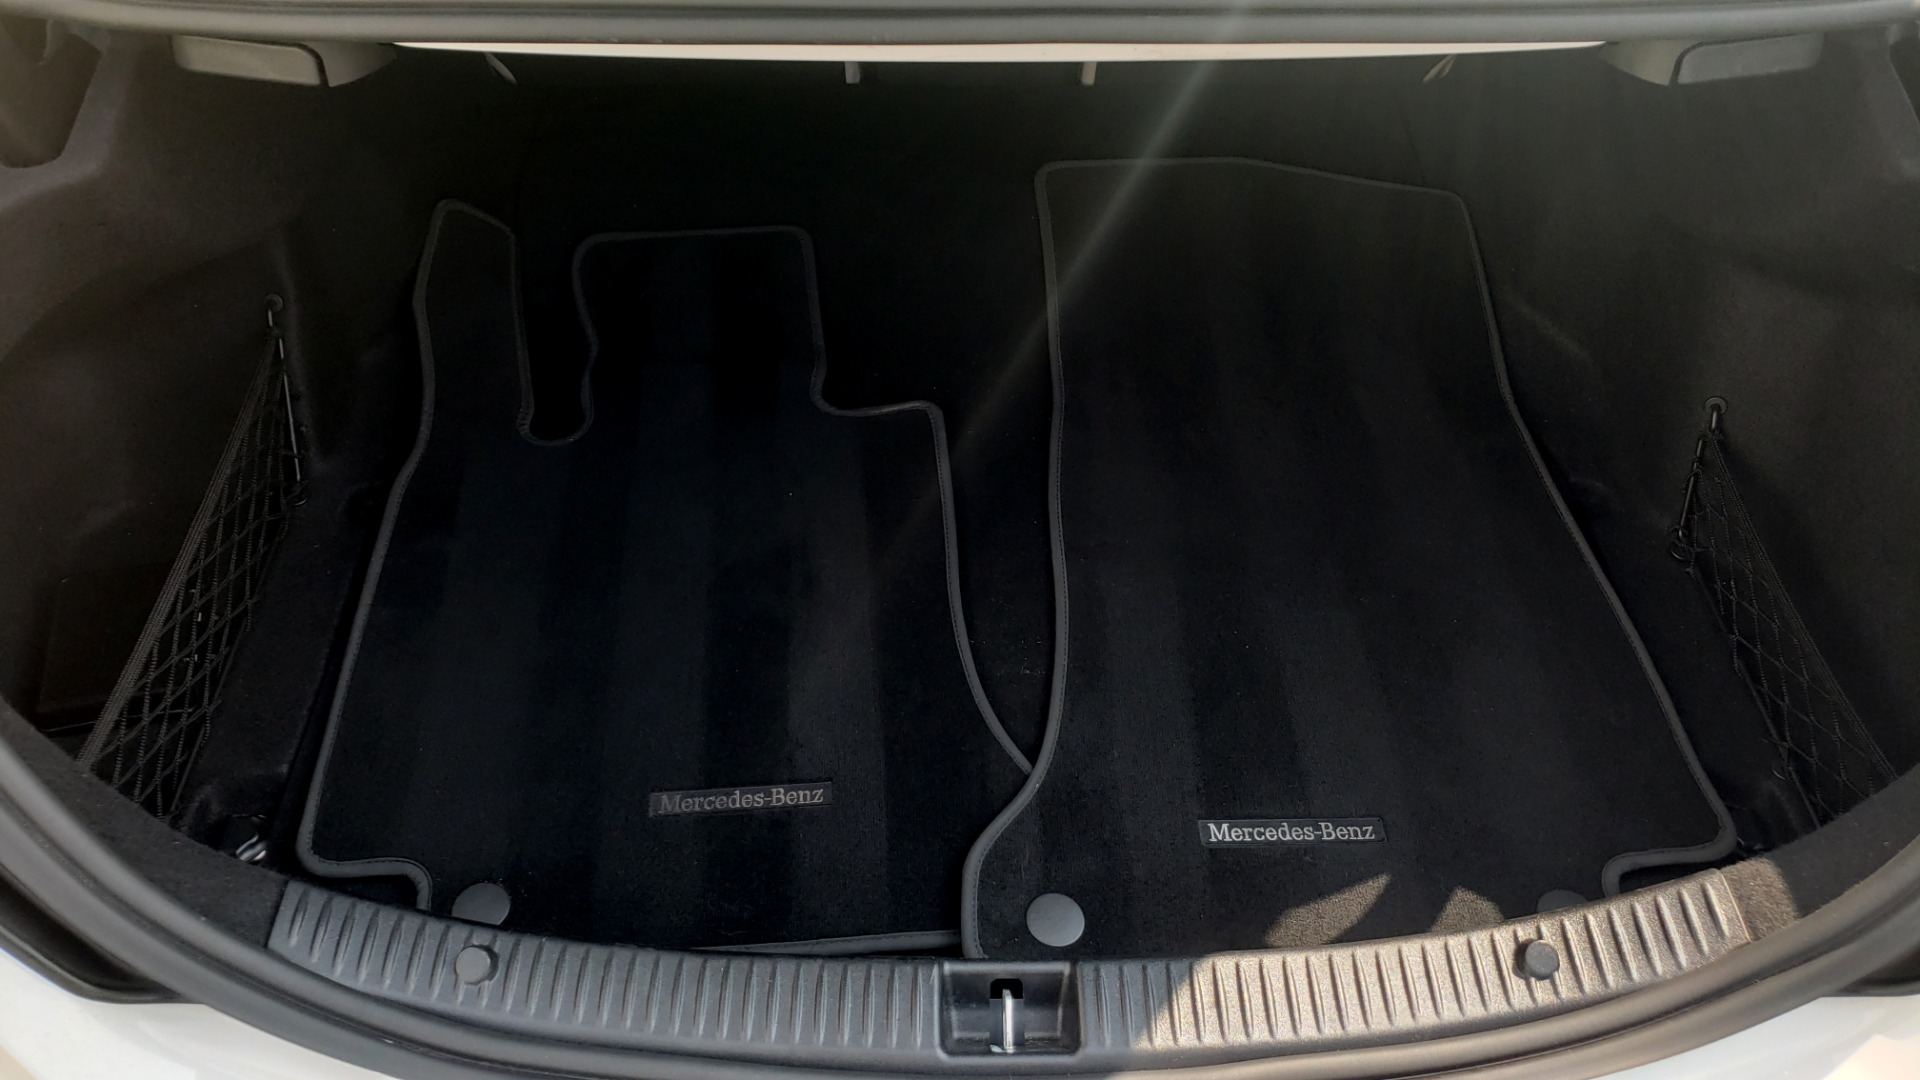 Used 2018 Mercedes-Benz C-CLASS C 300 PREMIUM / KEYLESS-GO / APPLE / PANO-ROOF / REARVIEW for sale $28,295 at Formula Imports in Charlotte NC 28227 16